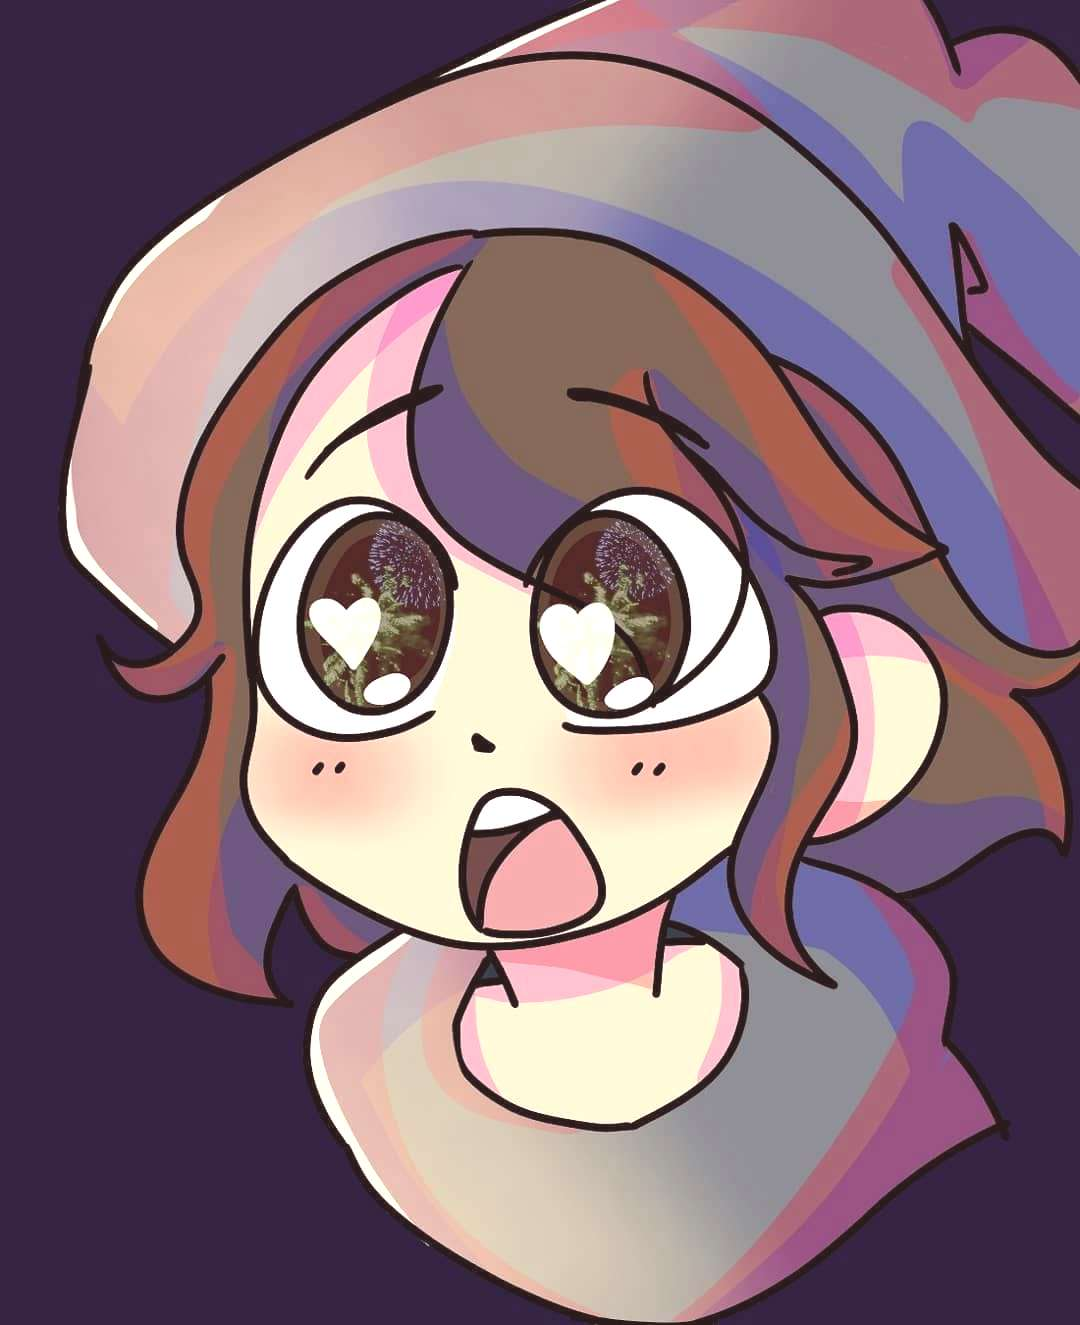 redraw from a anime im watching called Little Witch Academia